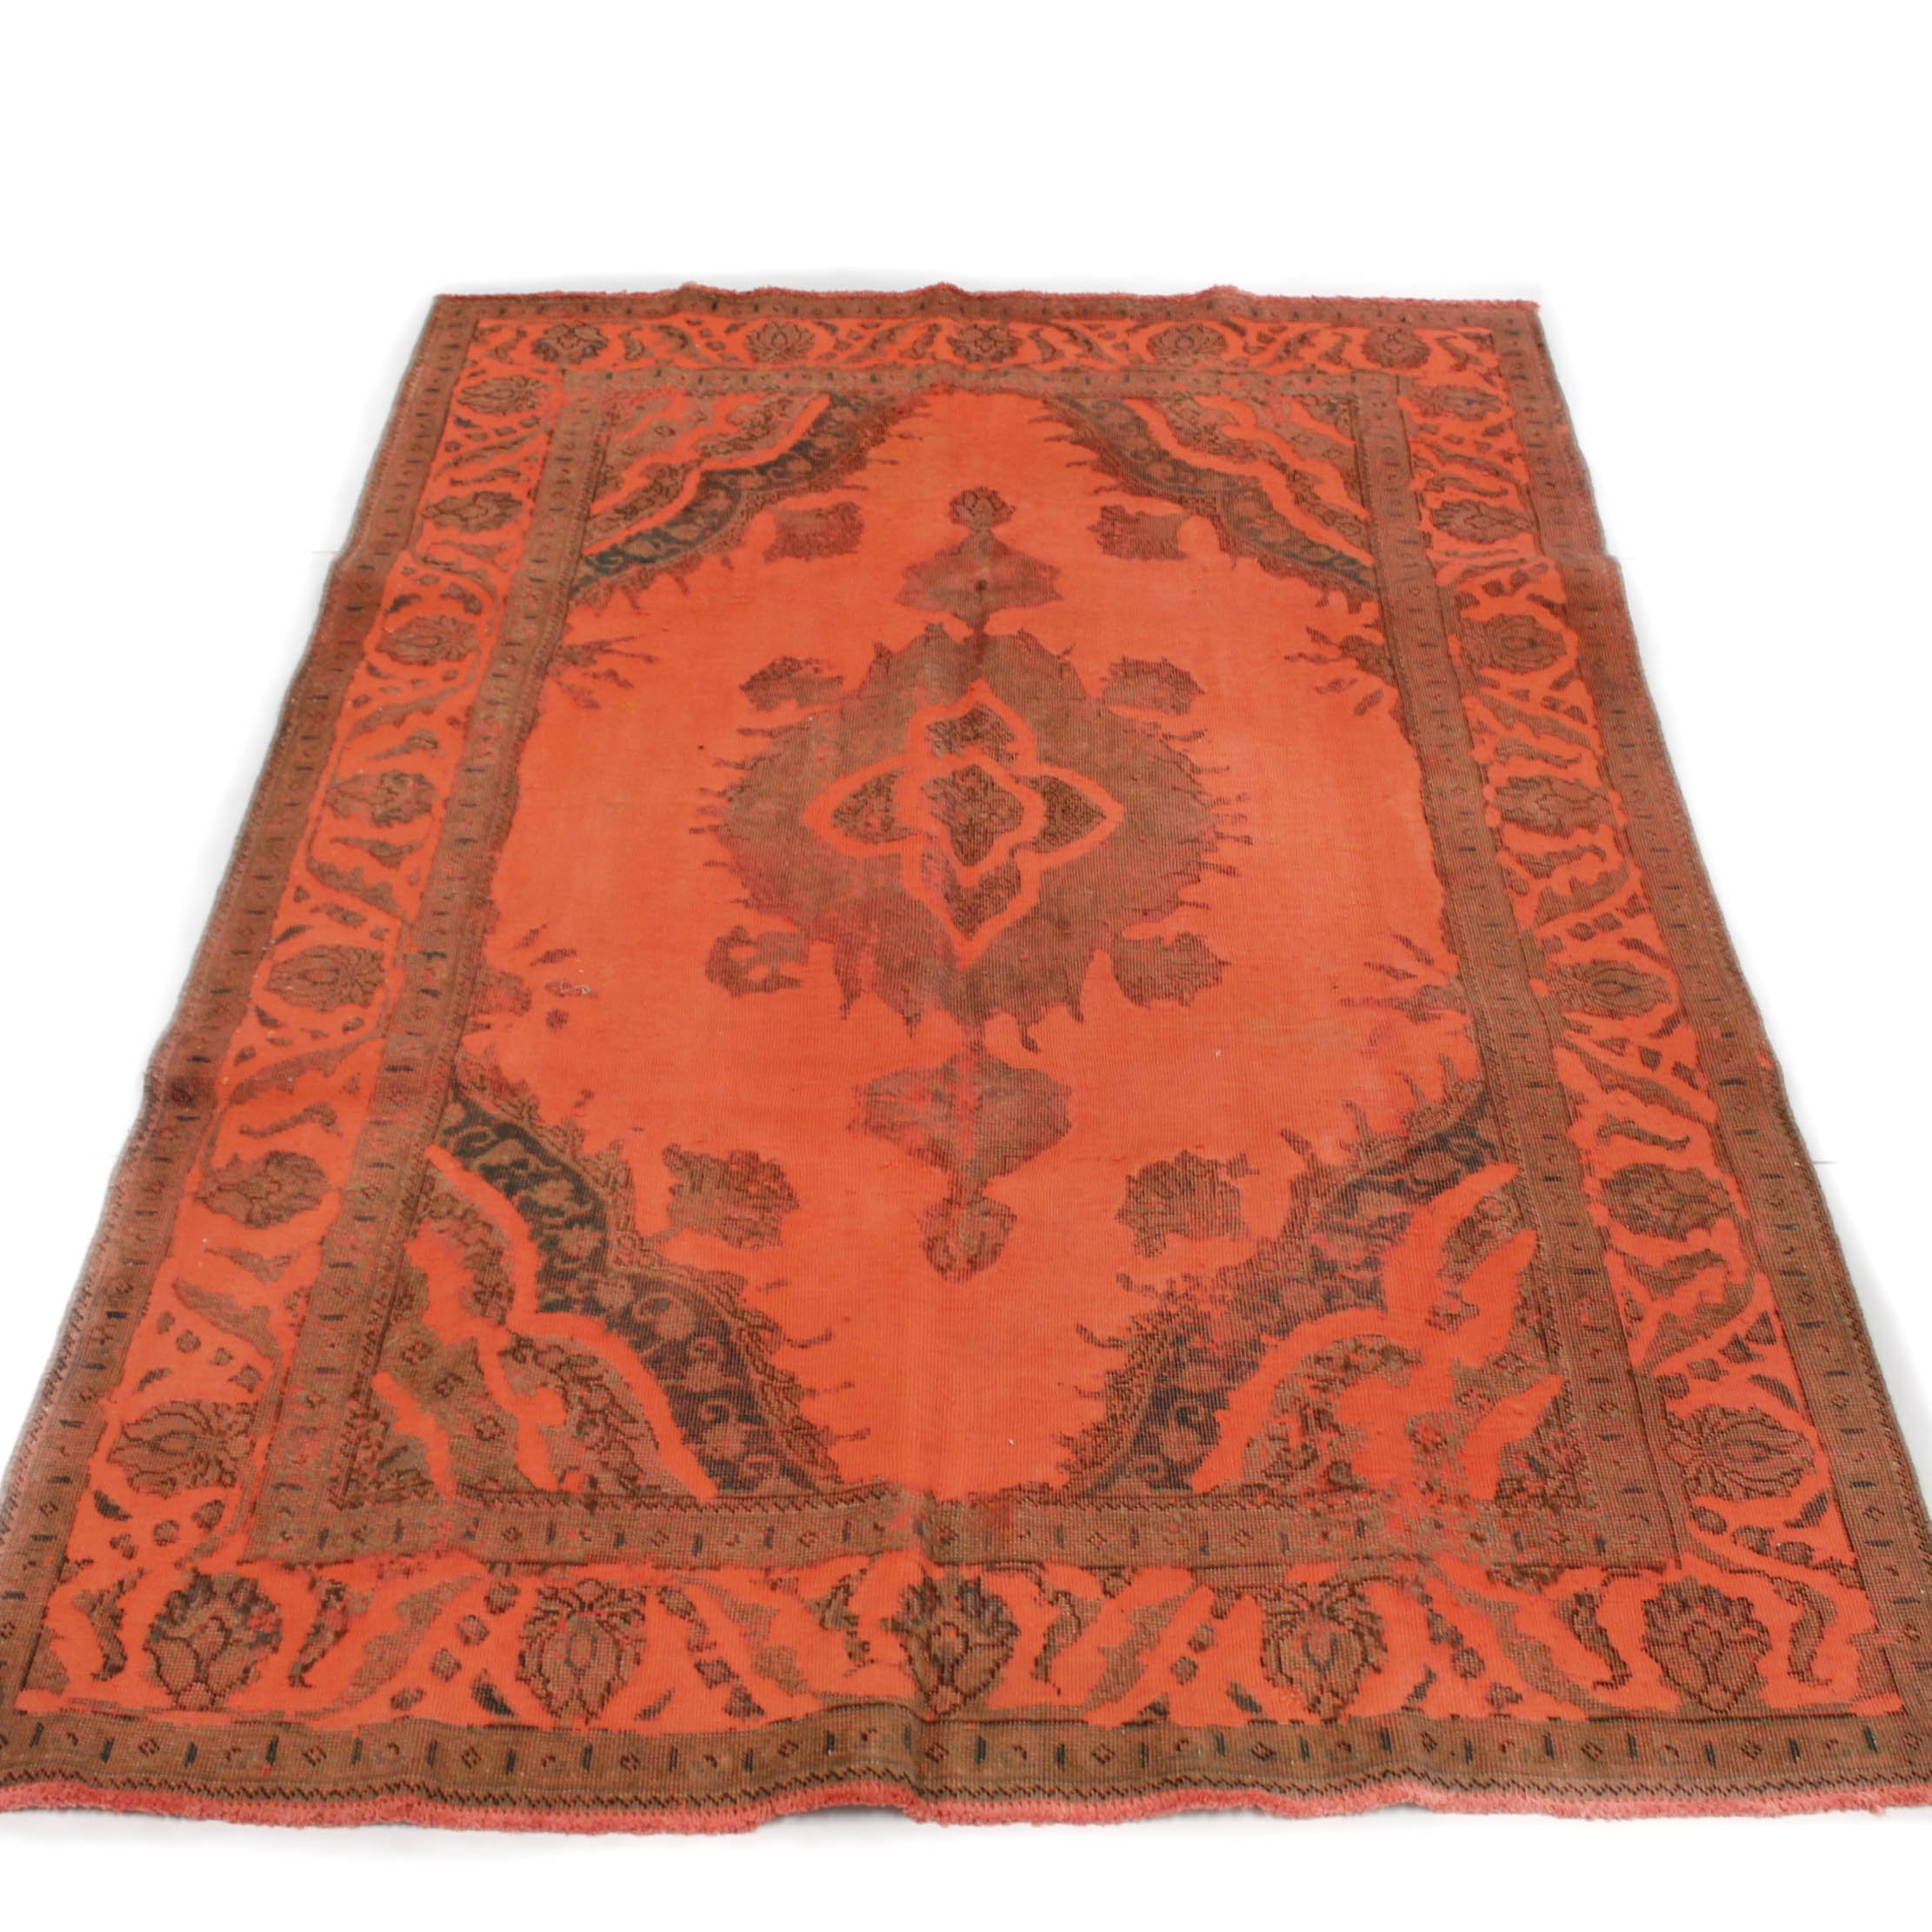 Semi-Antique Hand-Knotted Persian Tabriz Over-Dyed Rug